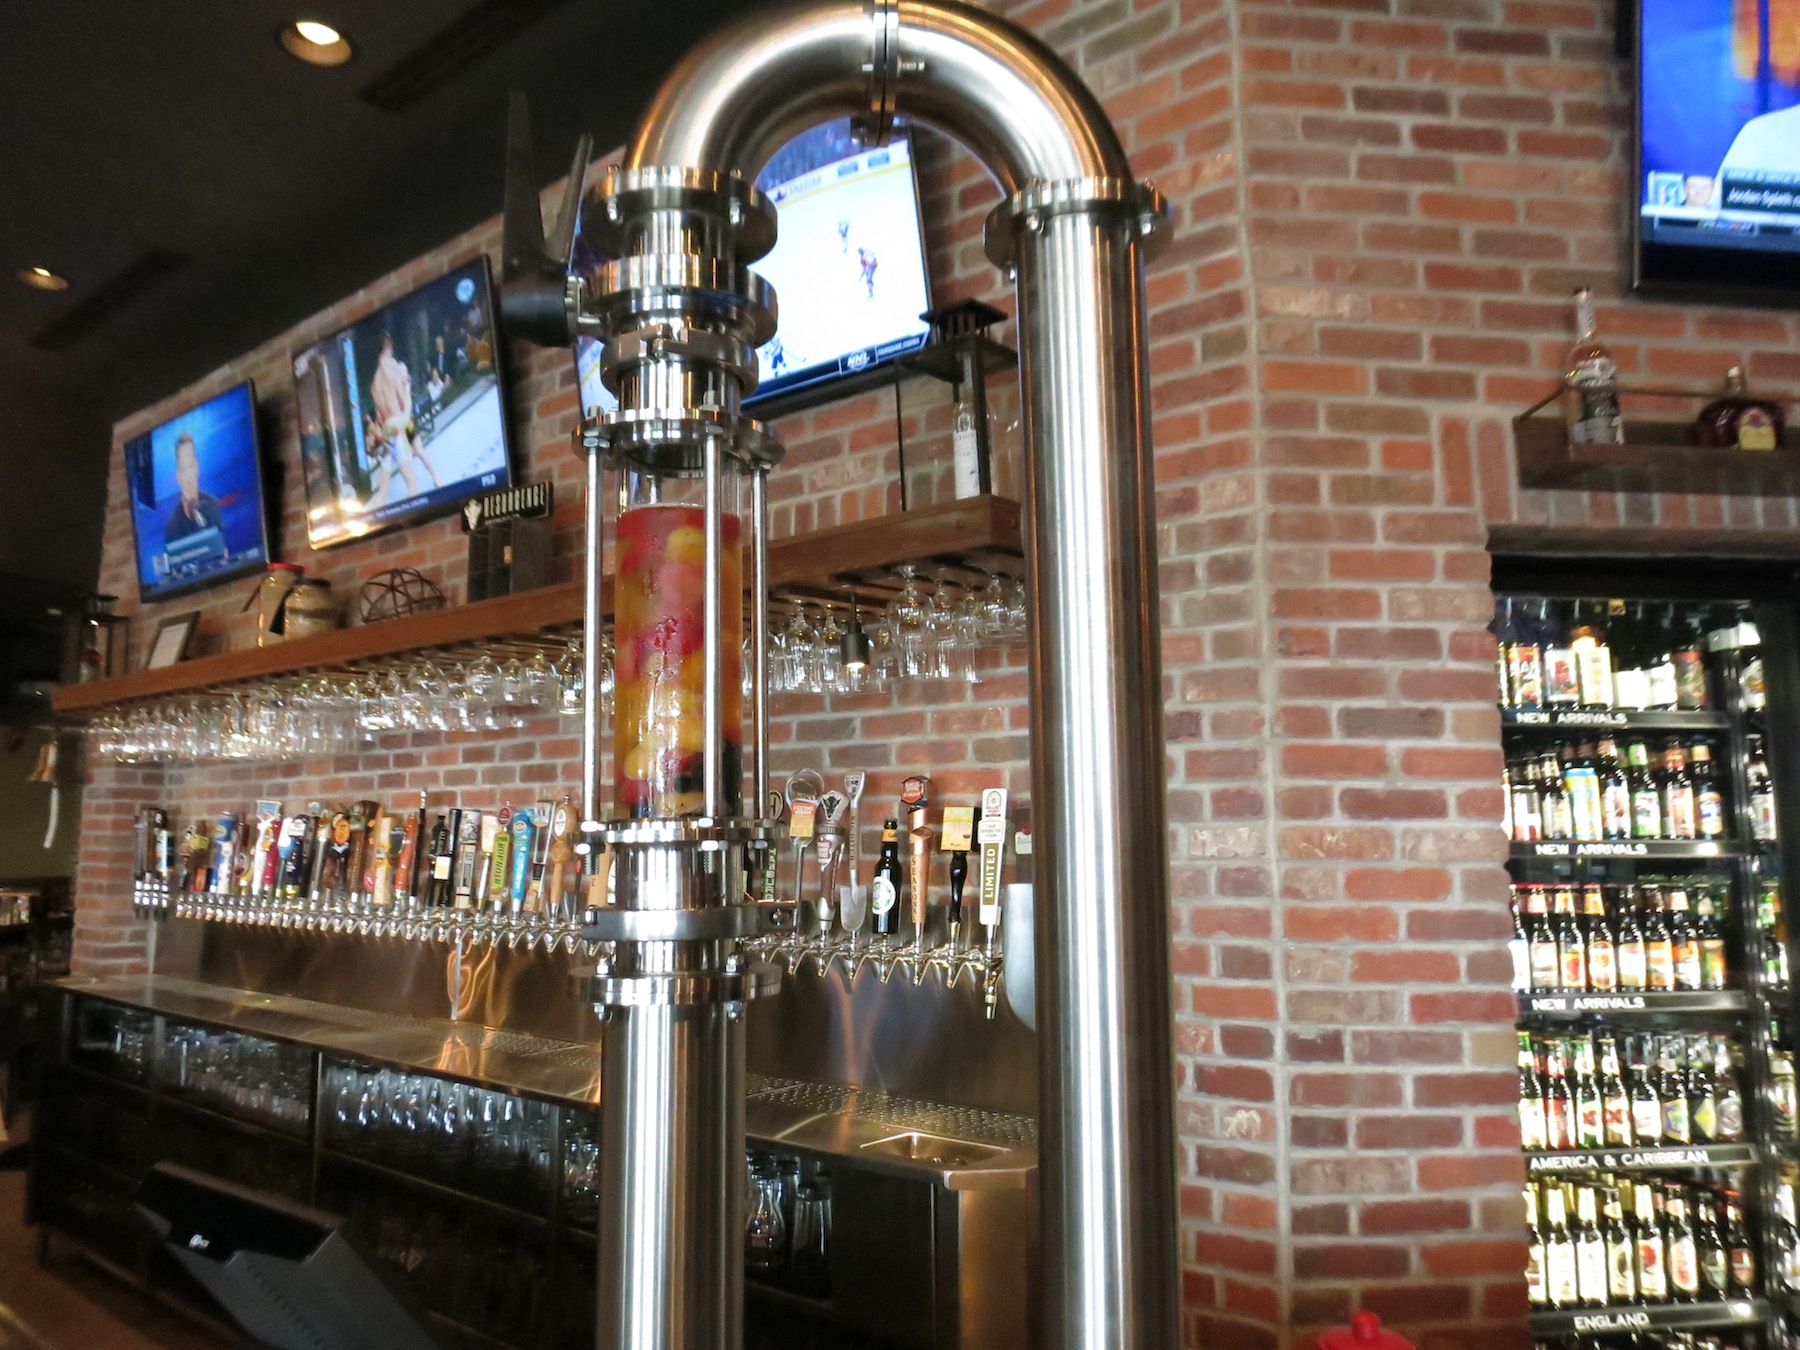 Infusing Tap (World of Beer)